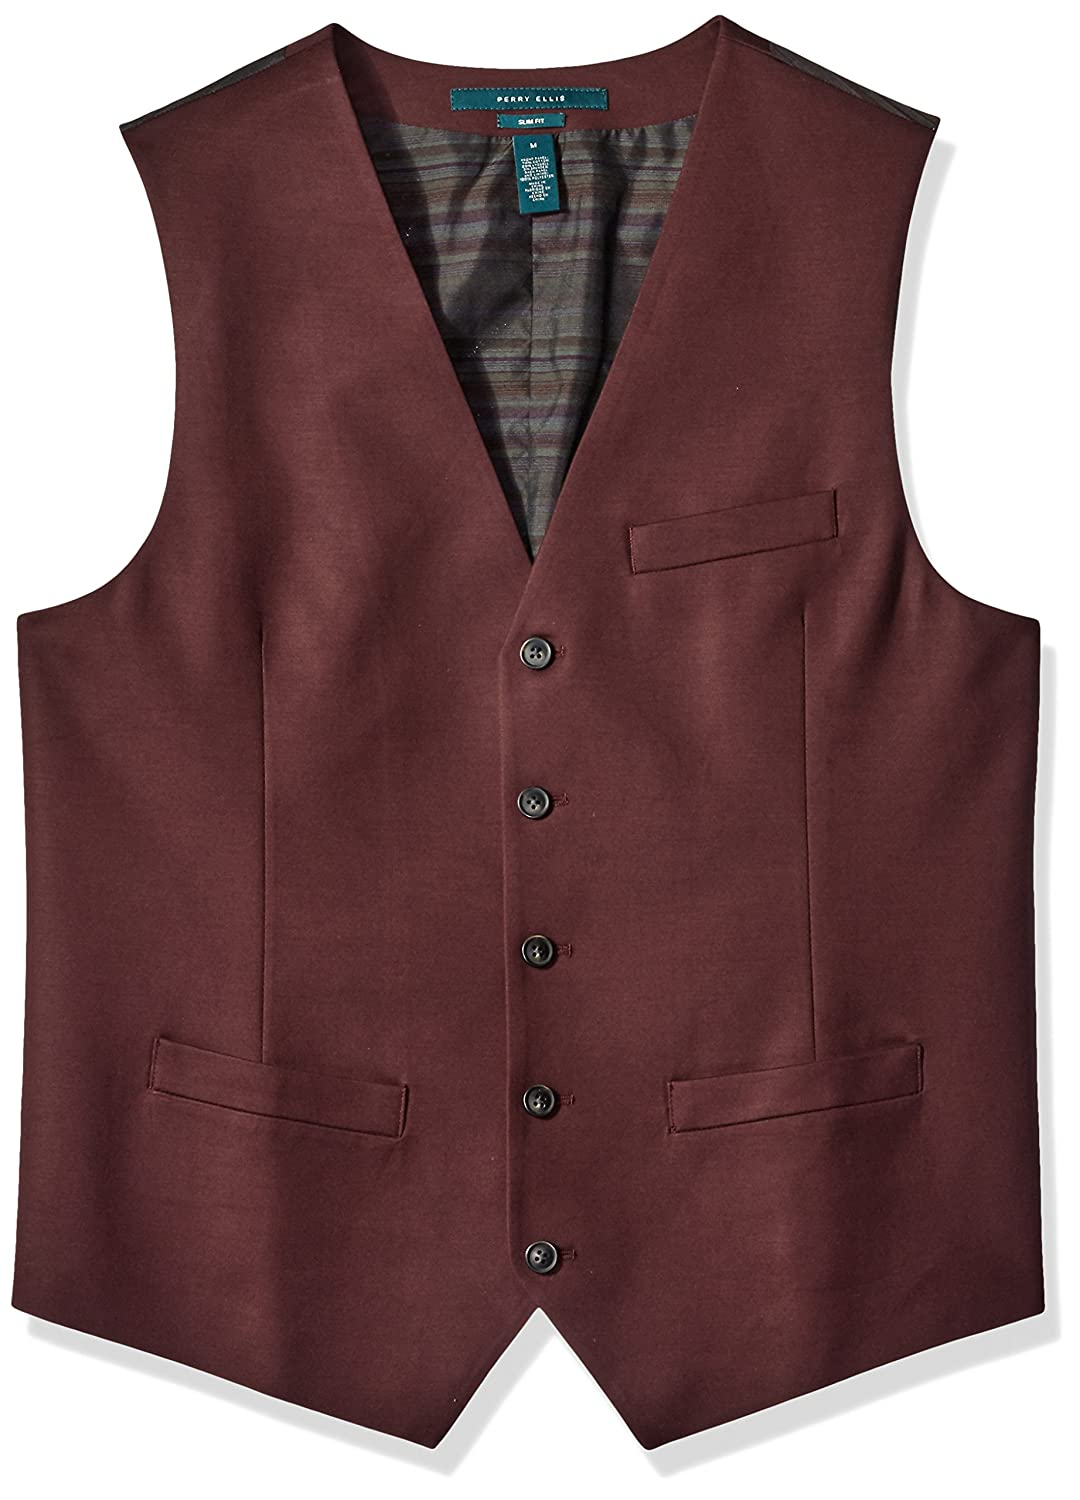 Perry Ellis Men's Big and Tall Slim Fit, Stretch Solid Sateen Suit Vest 4BHV4403